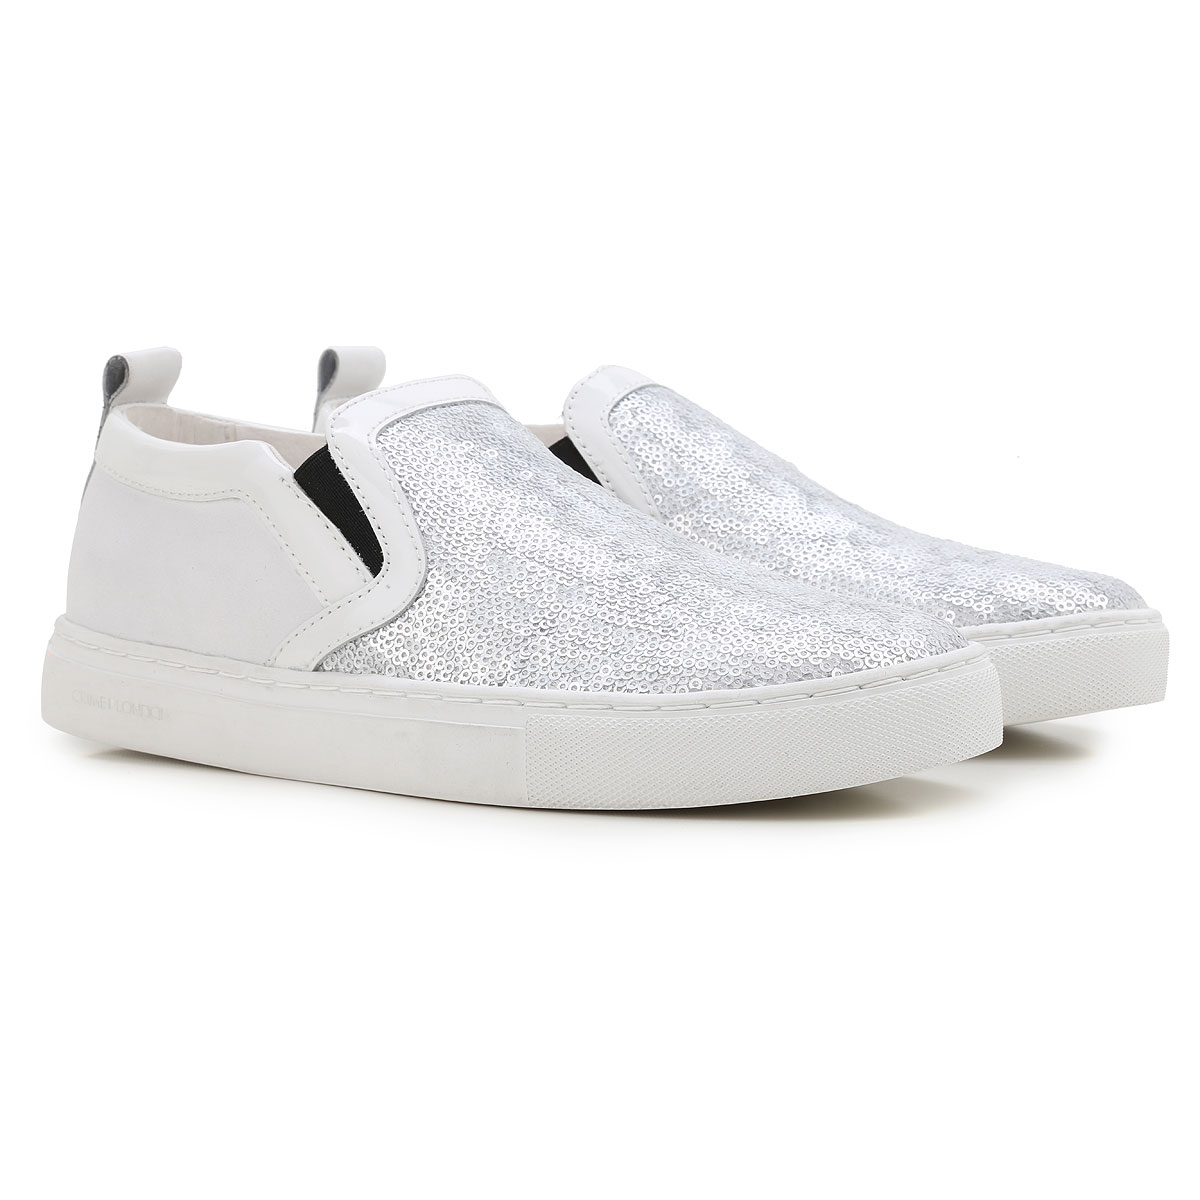 Image of Crime Slip on Sneakers for Women On Sale in Outlet, White, Leather, 2017, 10 8 9